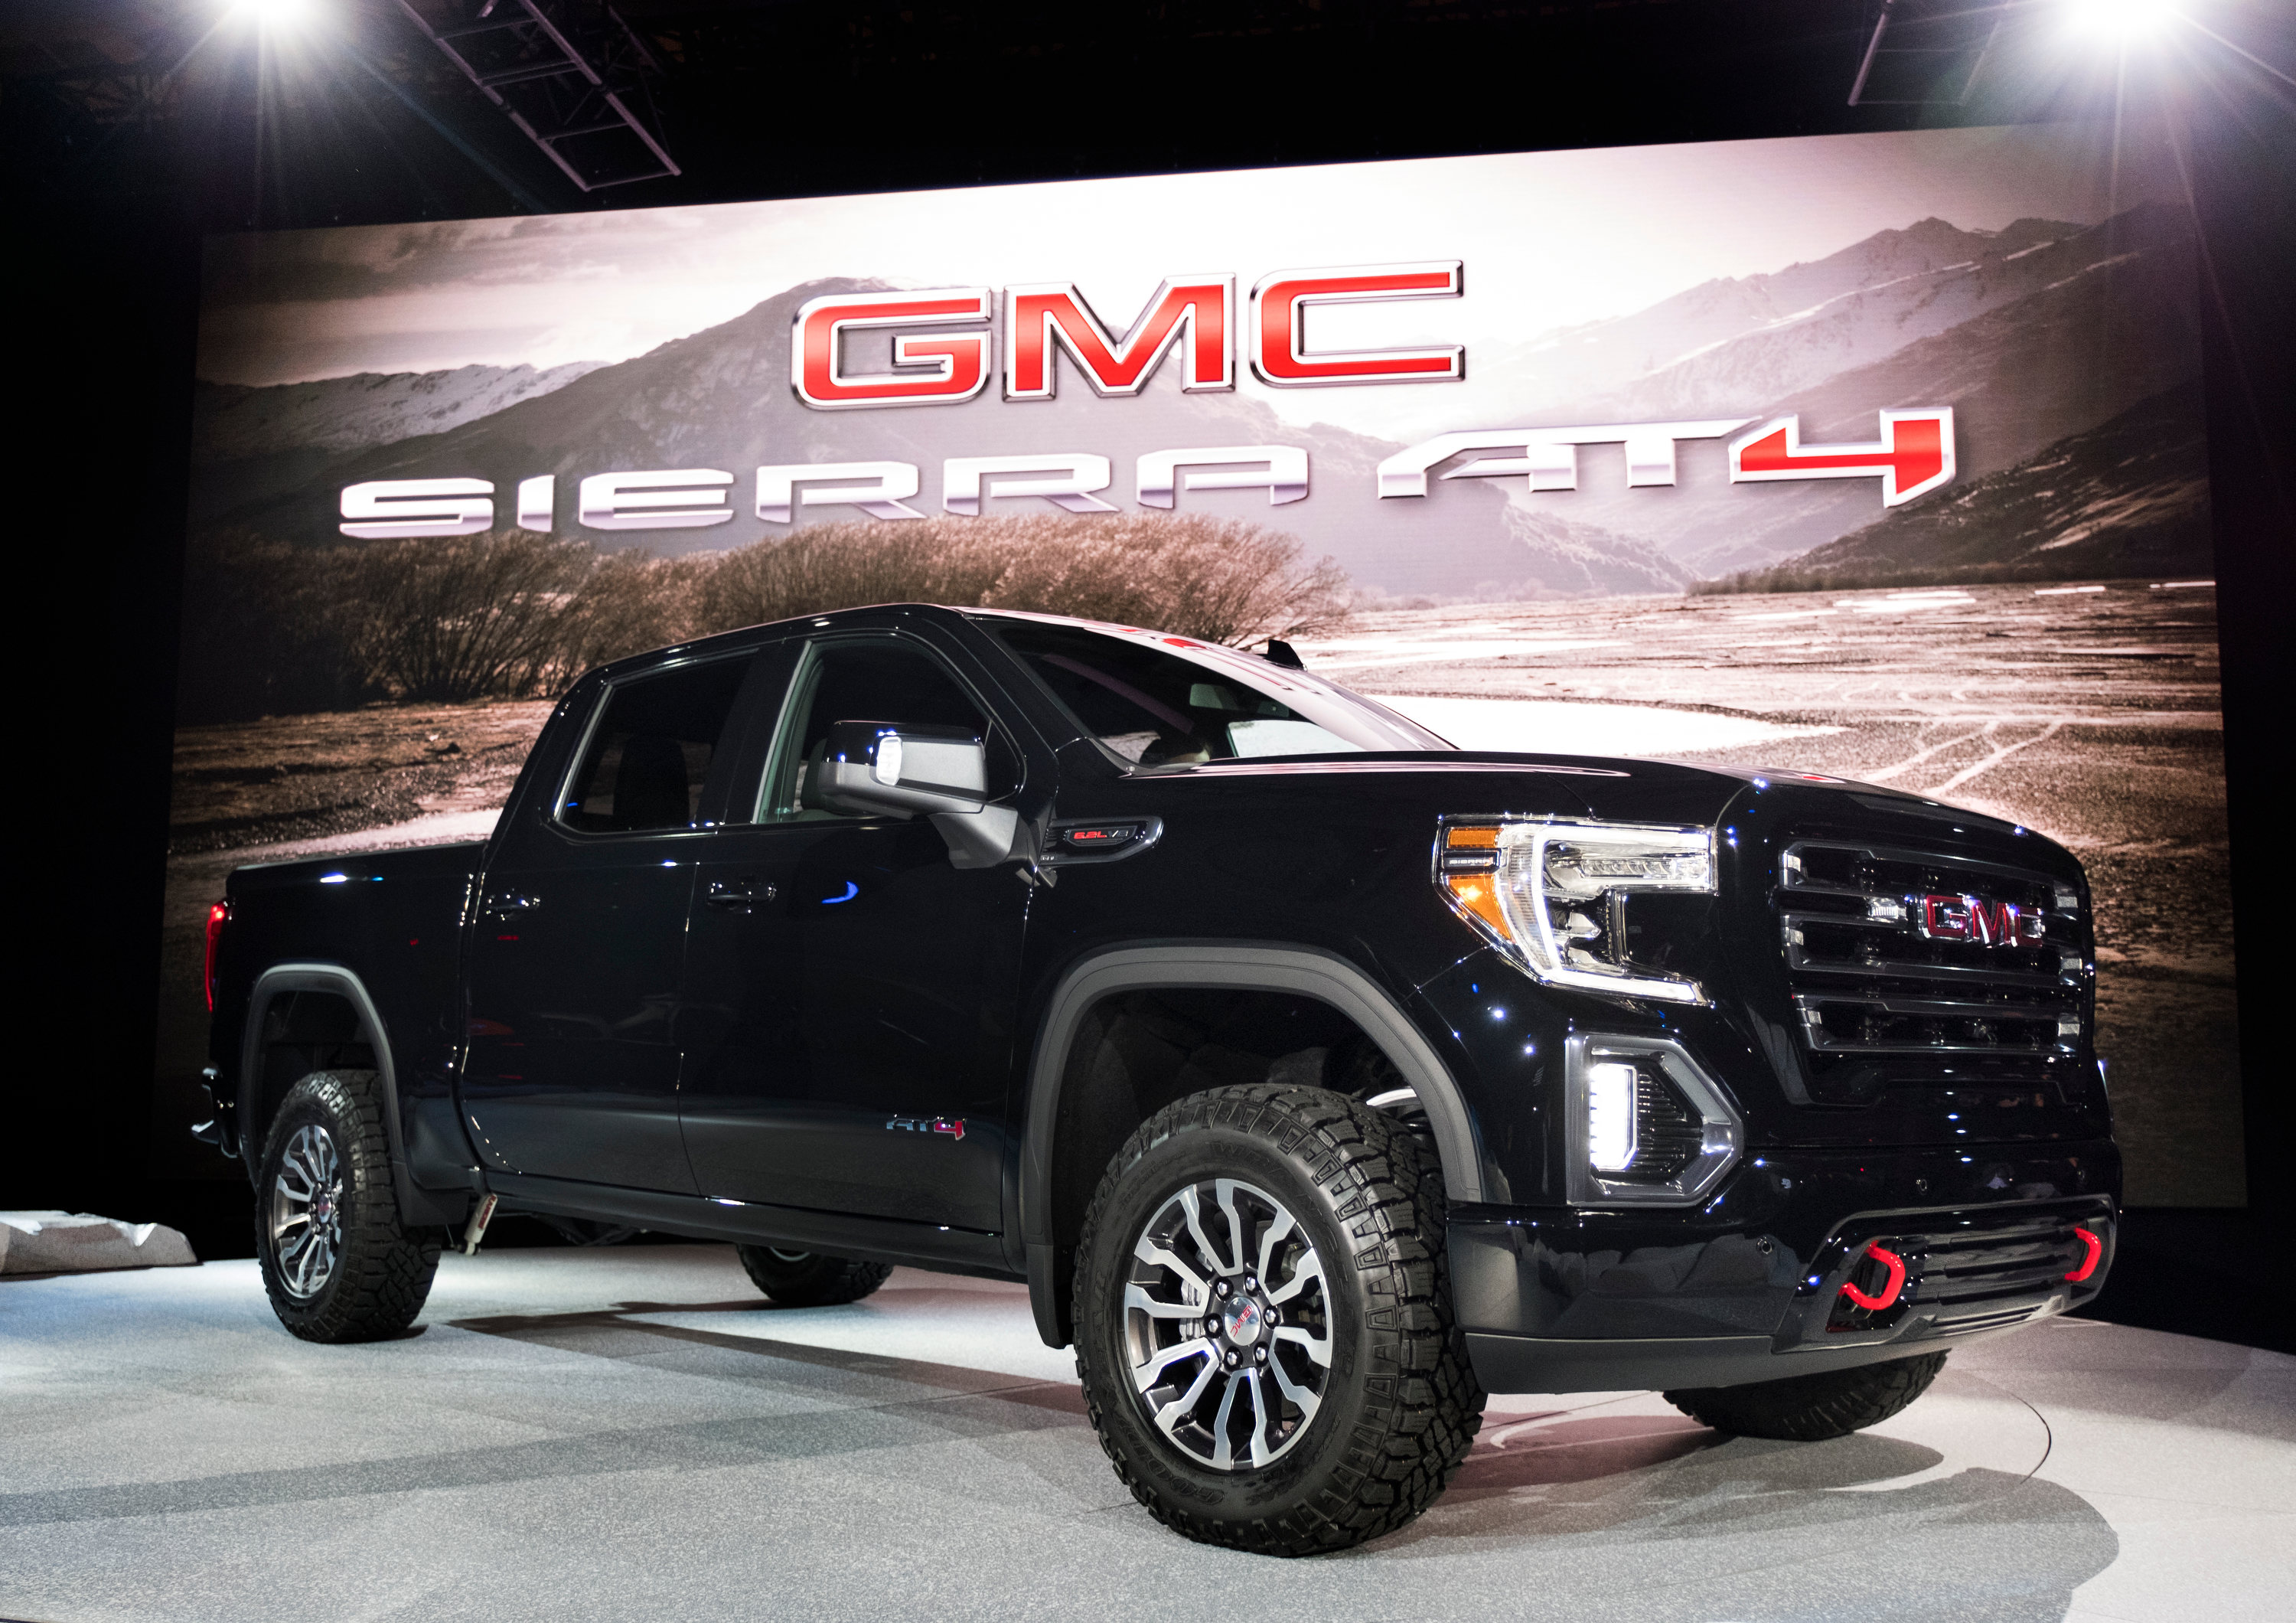 gm generation or in size gms fiber will pickup of wars trucks carbon articles gmc redesigned truck its weapon latest bn s versions unveil next wsj full